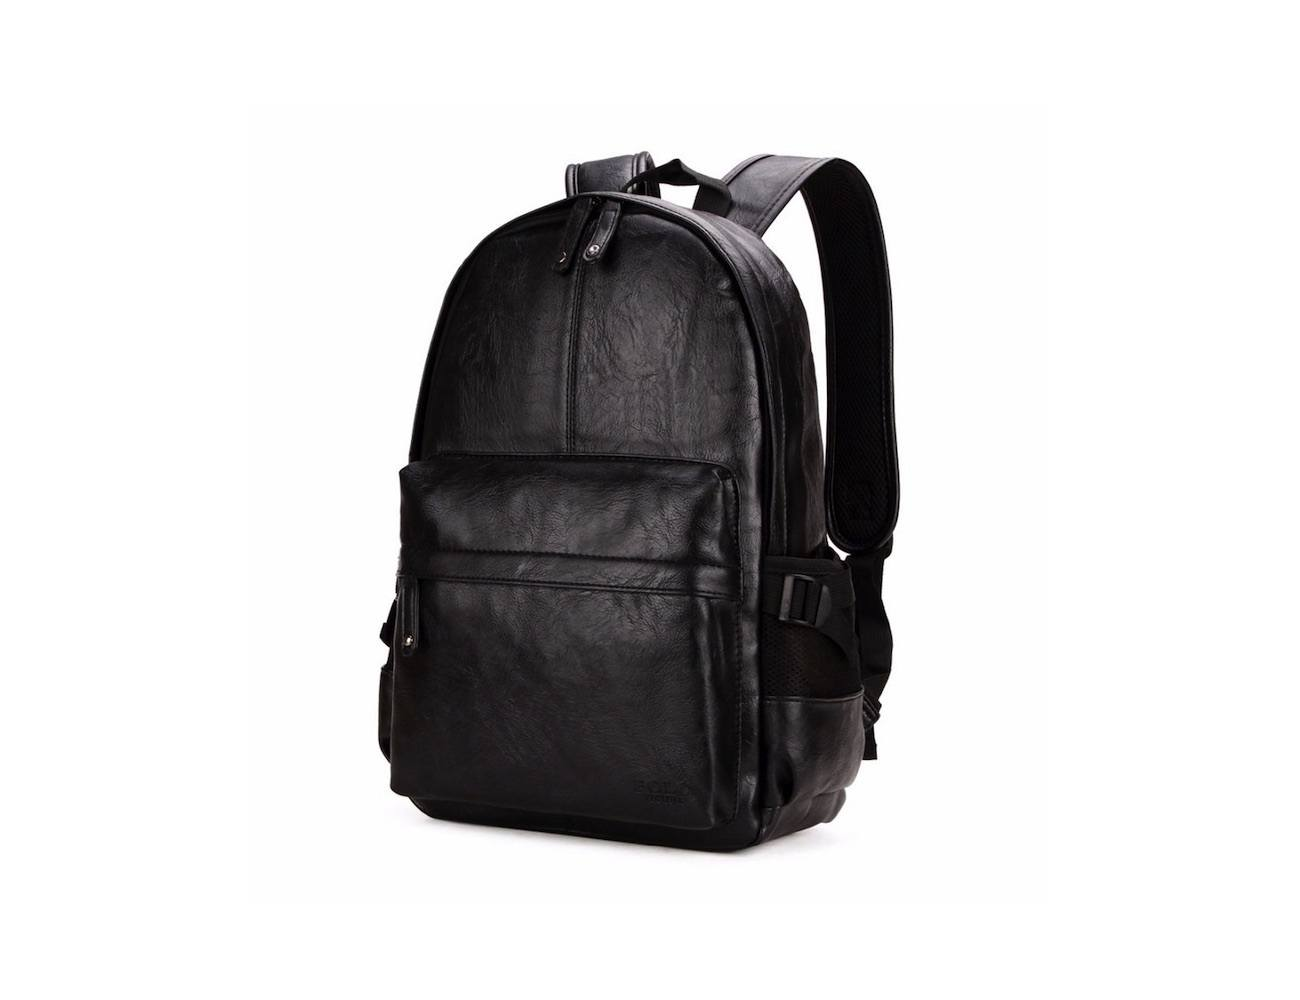 Large Sized Everyday Leather Backpack